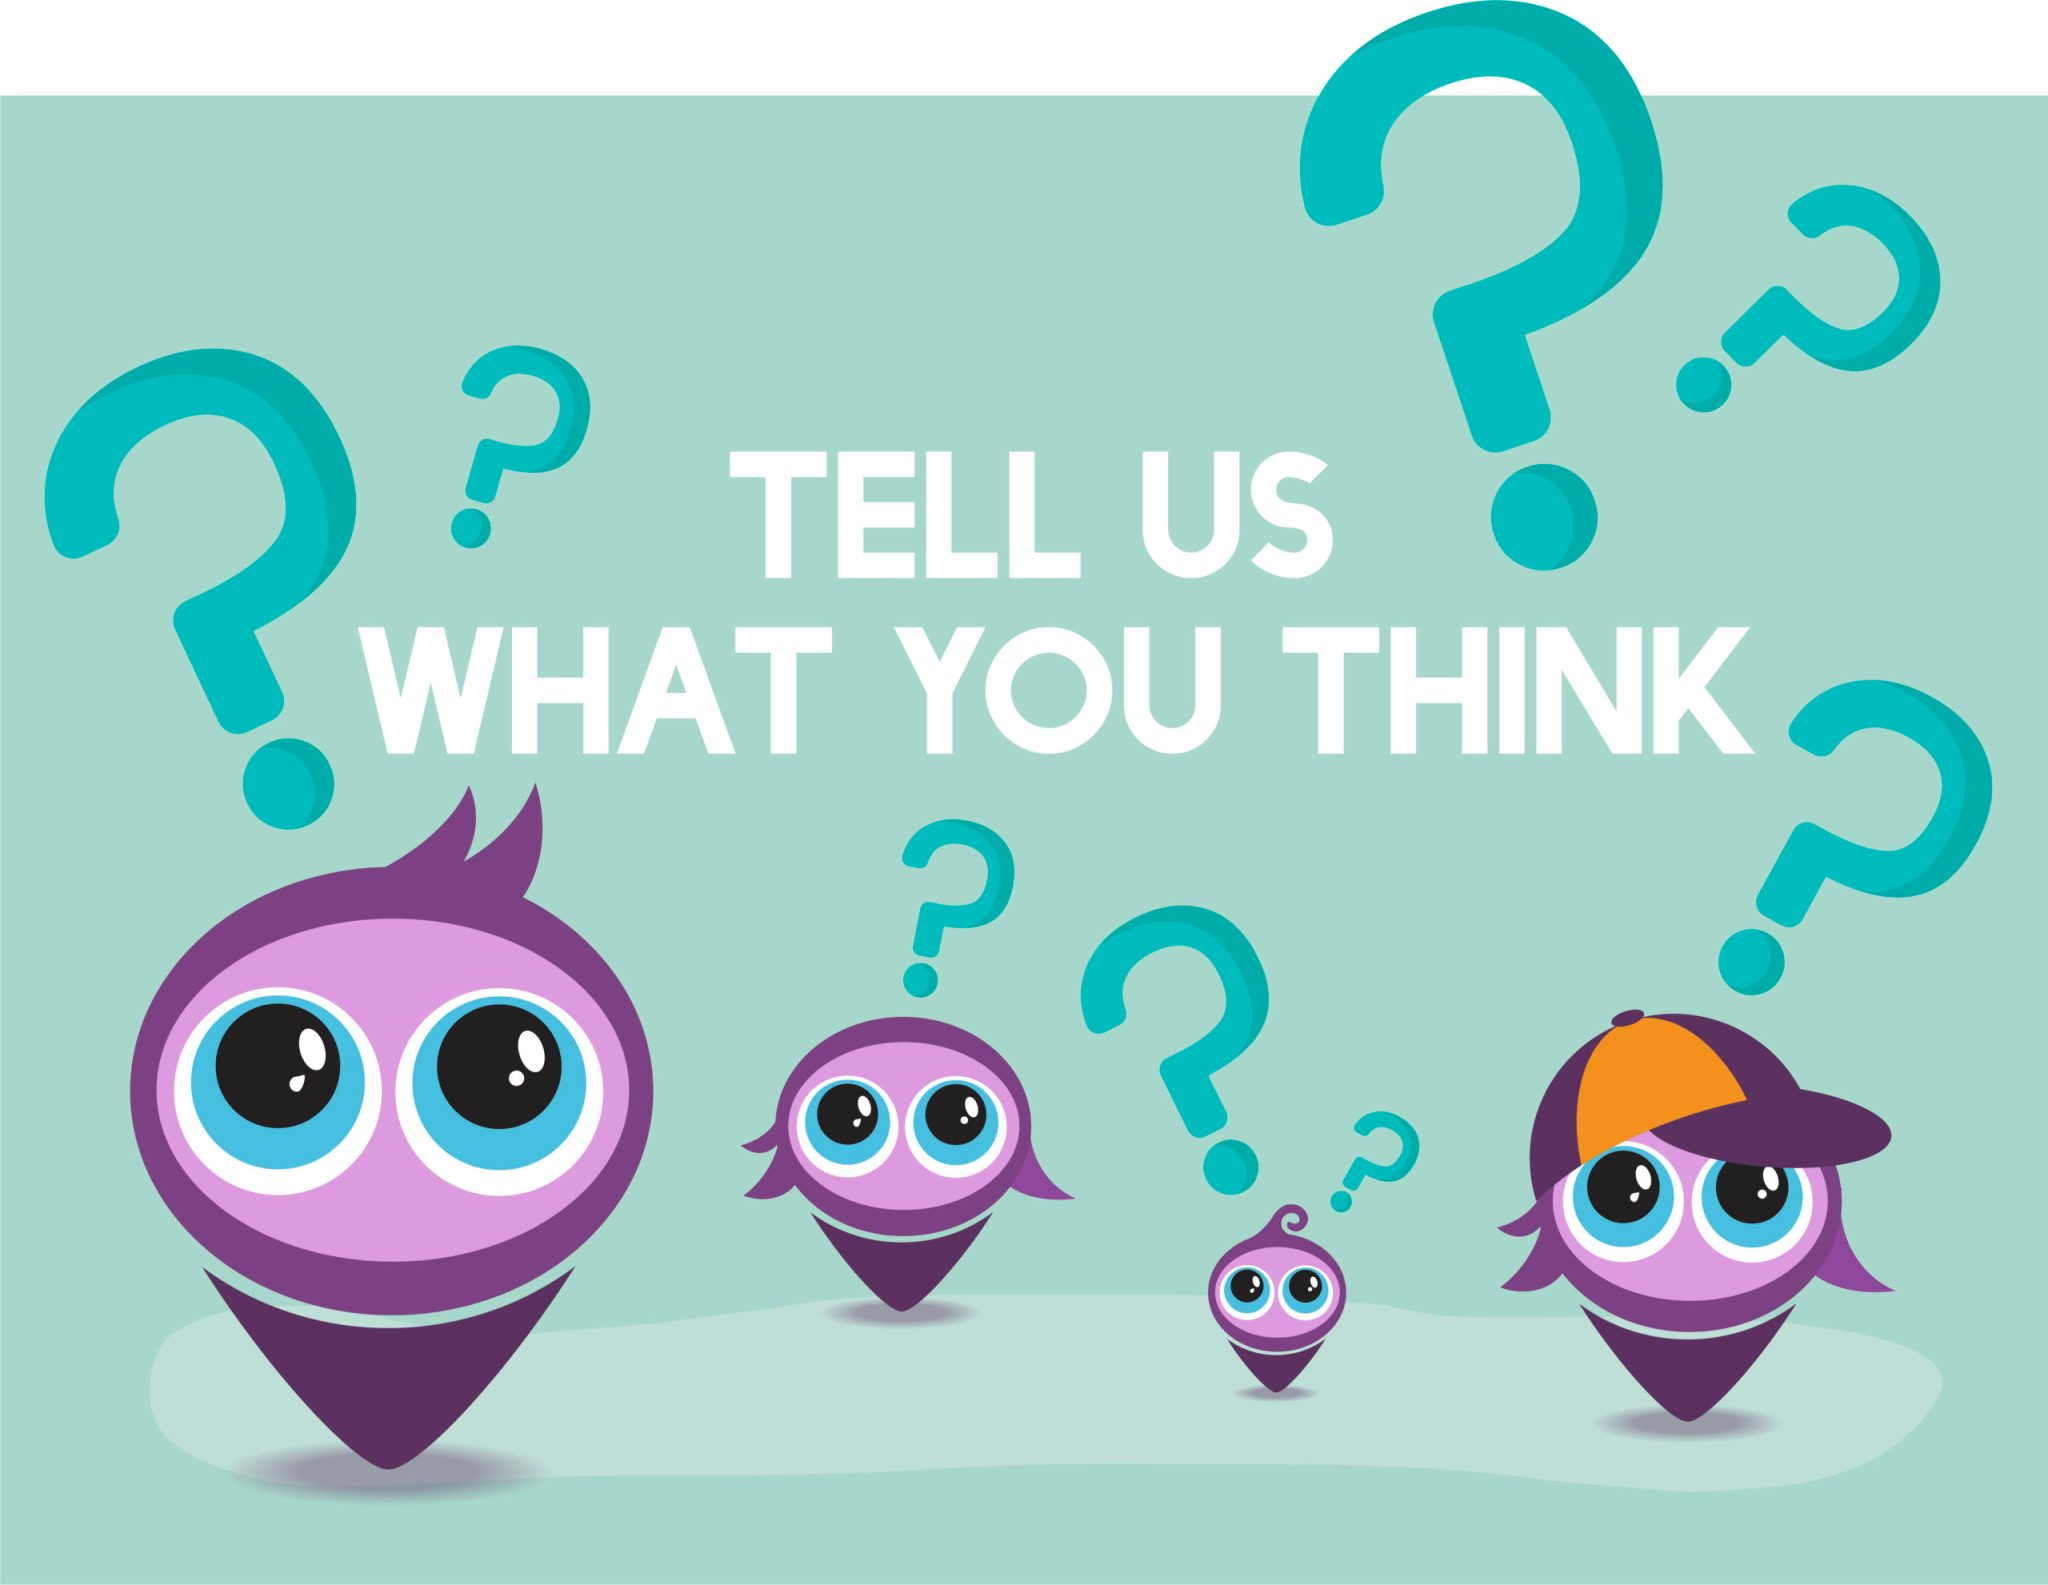 Kidsburgh wants to hear from you! Take our survey on kids' mental health.